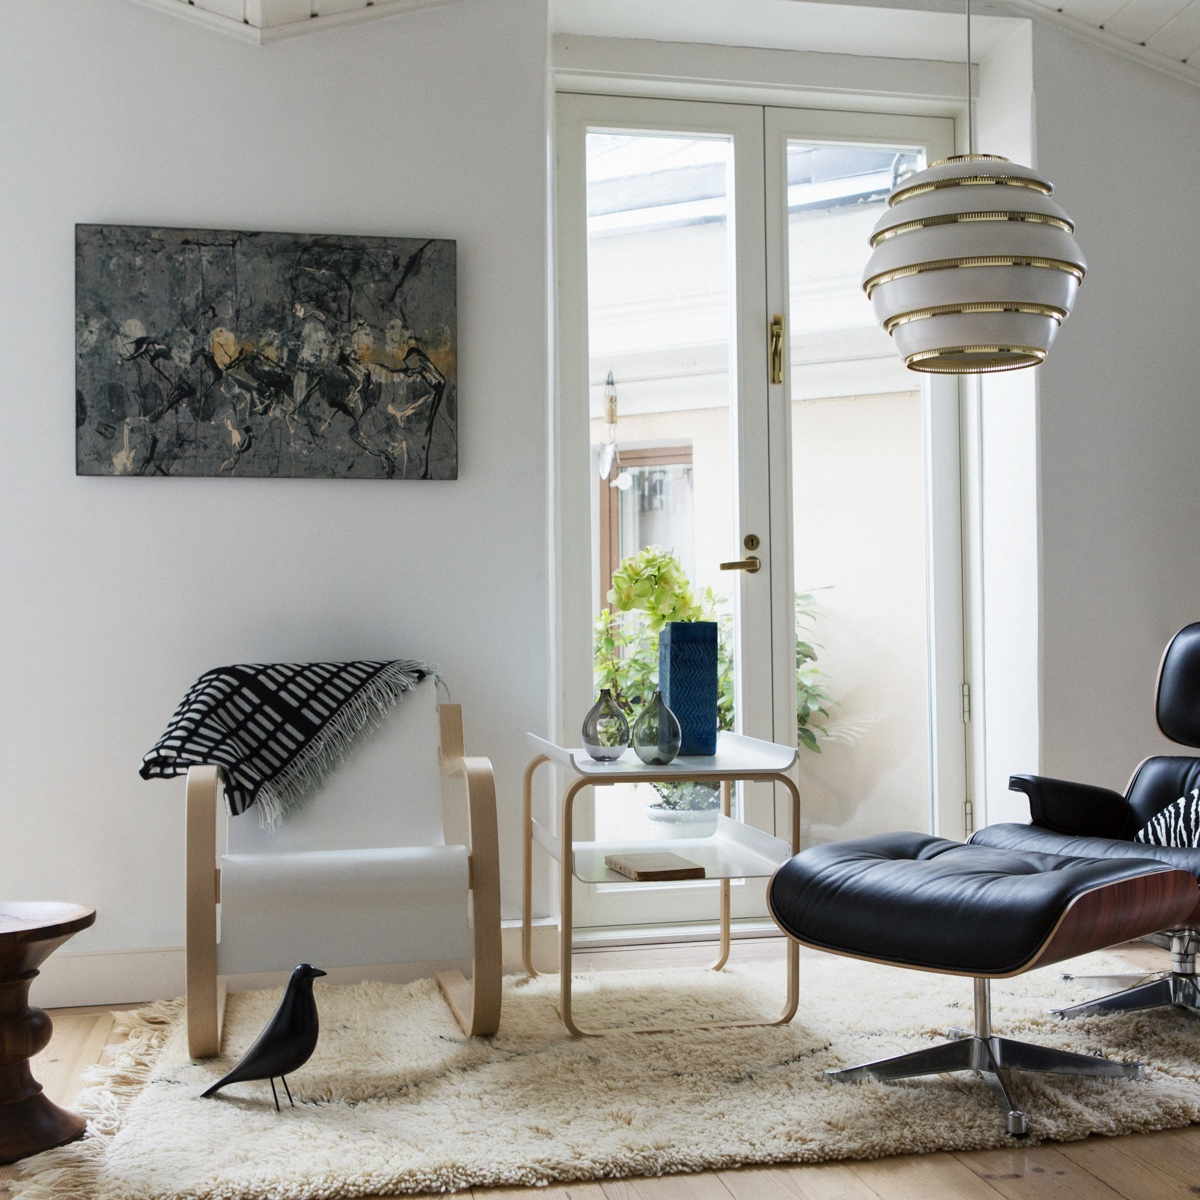 Alvar Aalto's designs shown alongside Vitra design pieces (Vitra acquired Artek in 2013). Aalto designs from left to right: Armchair 42 (1932), Table 915 (1932) and Pendant Light A331 (1953).